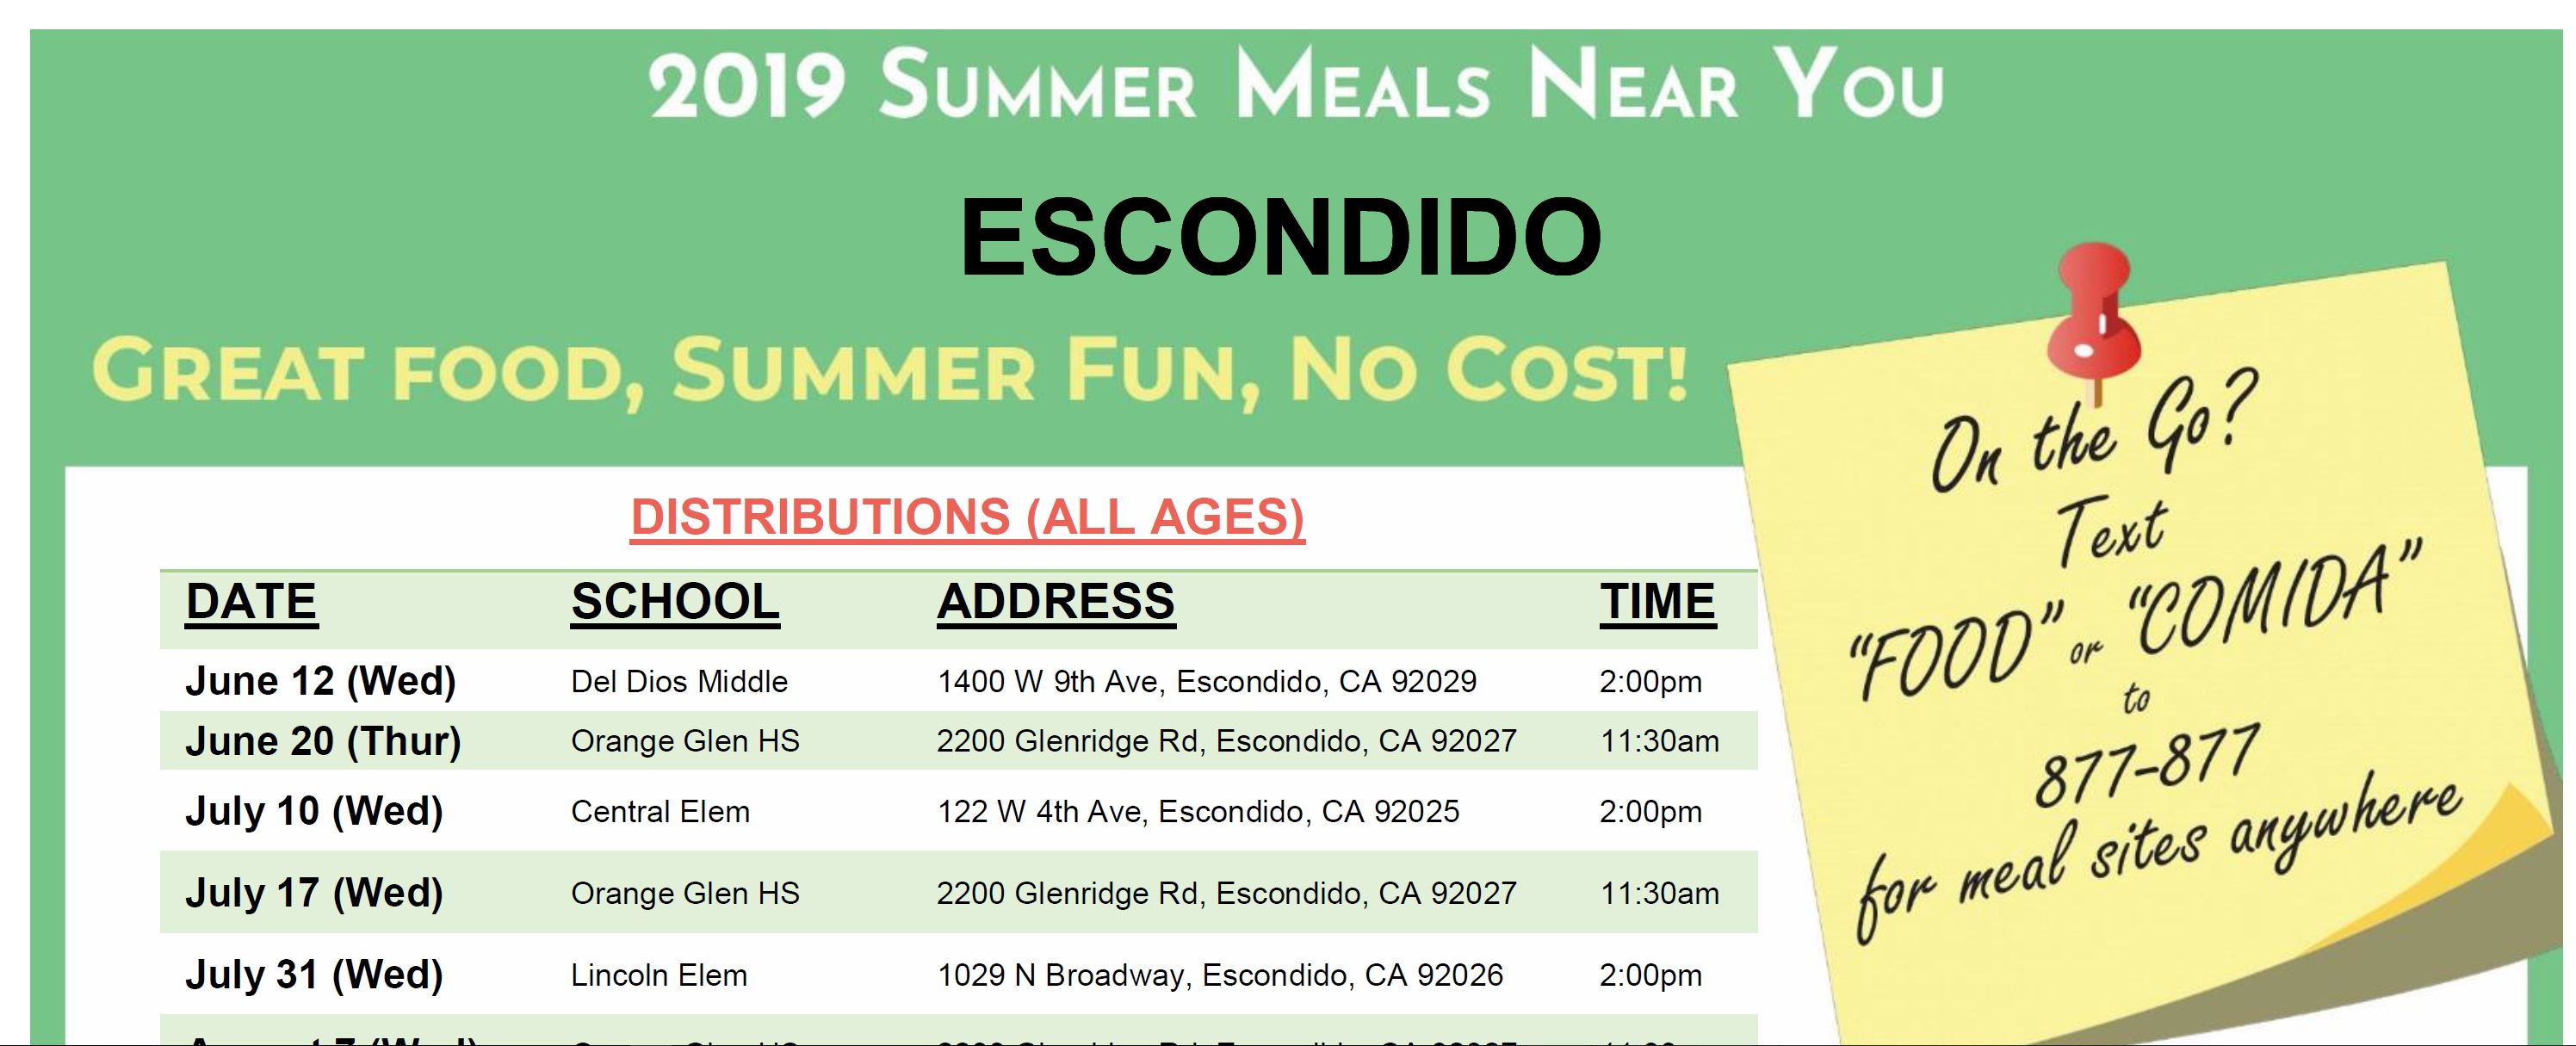 2019 Summer Meals Near You